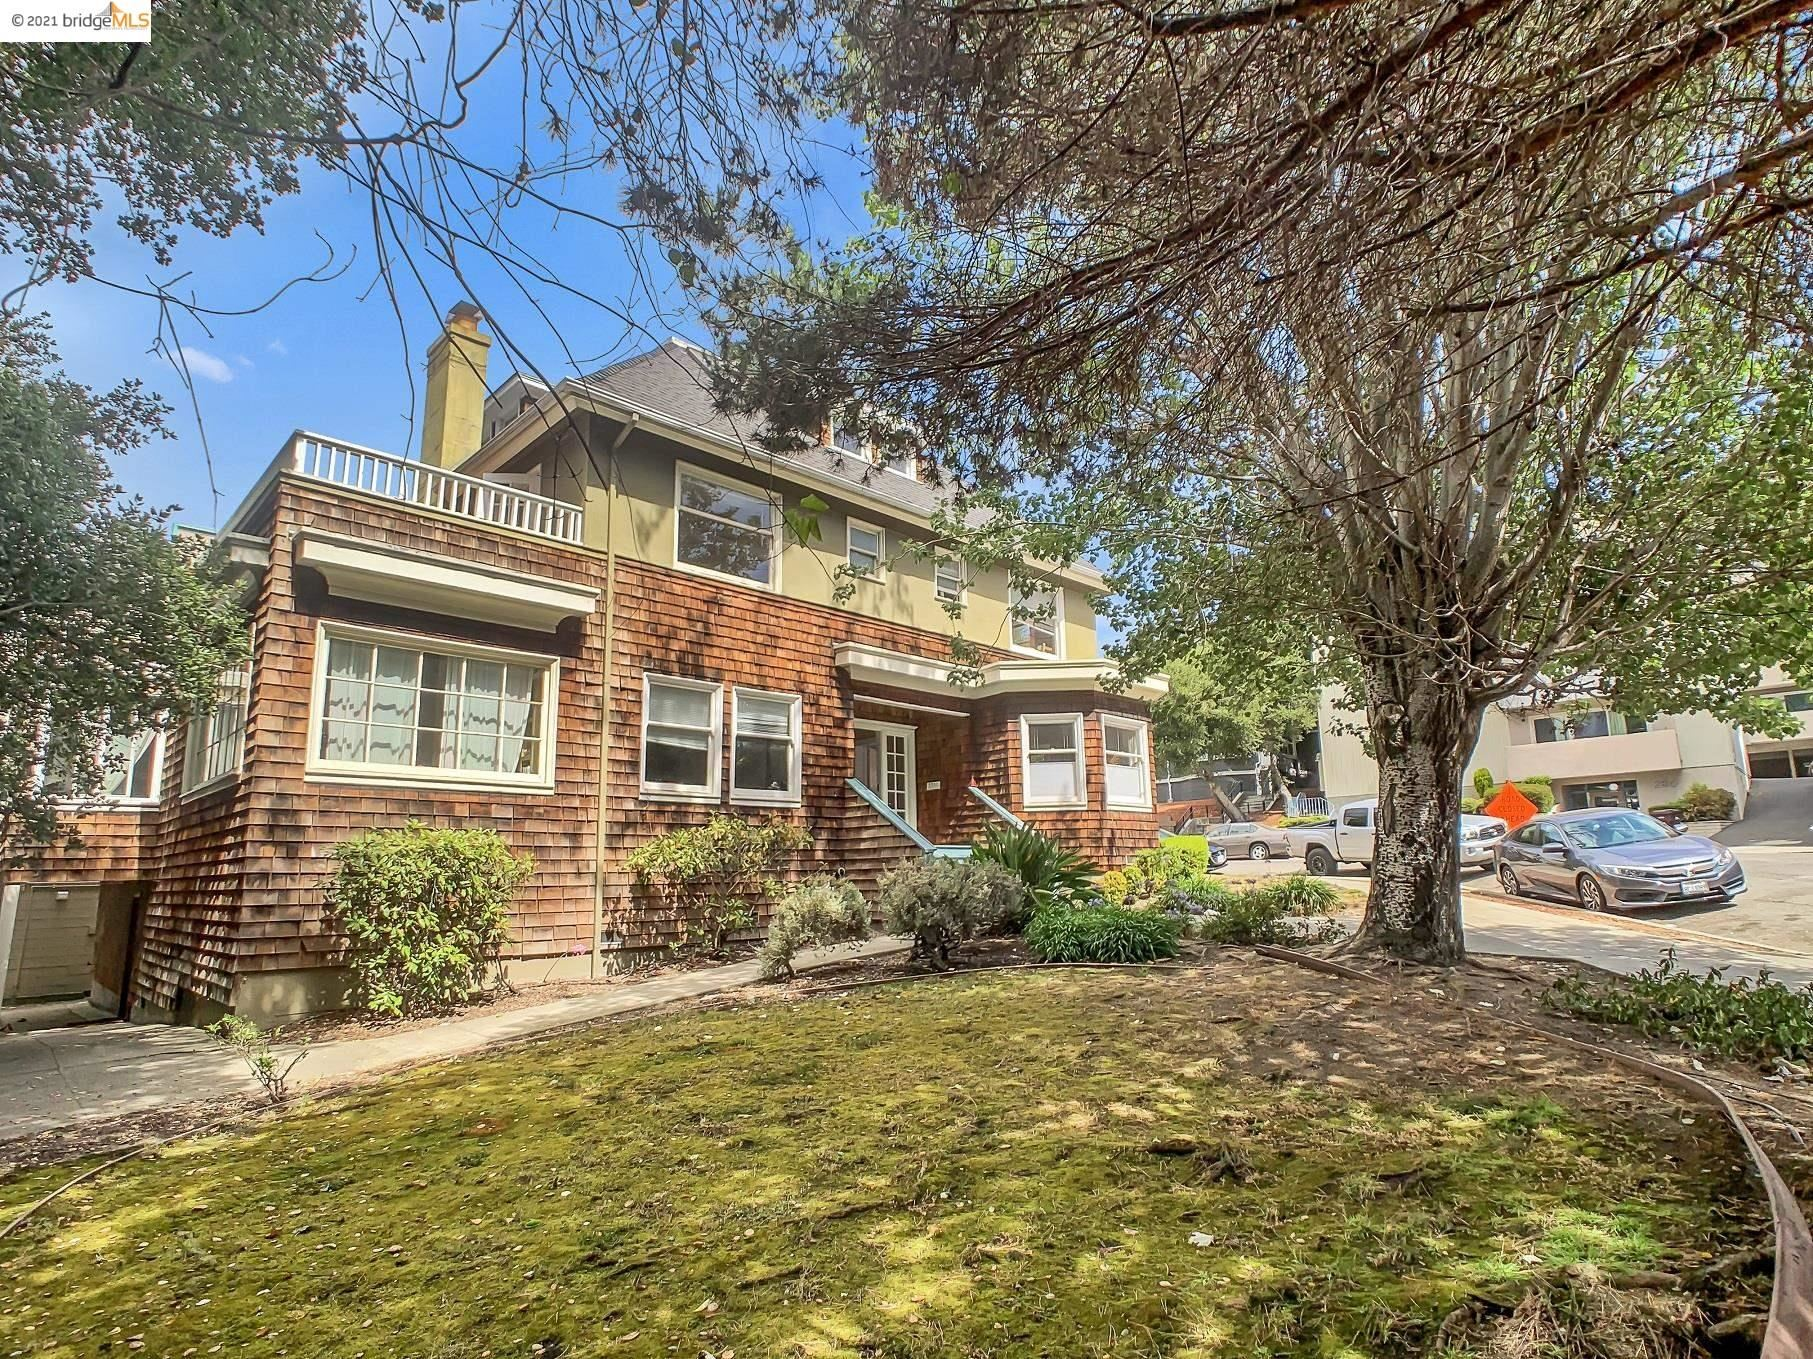 Photo of 283 Park View Ter, OAKLAND, CA 94610 (MLS # 40966429)